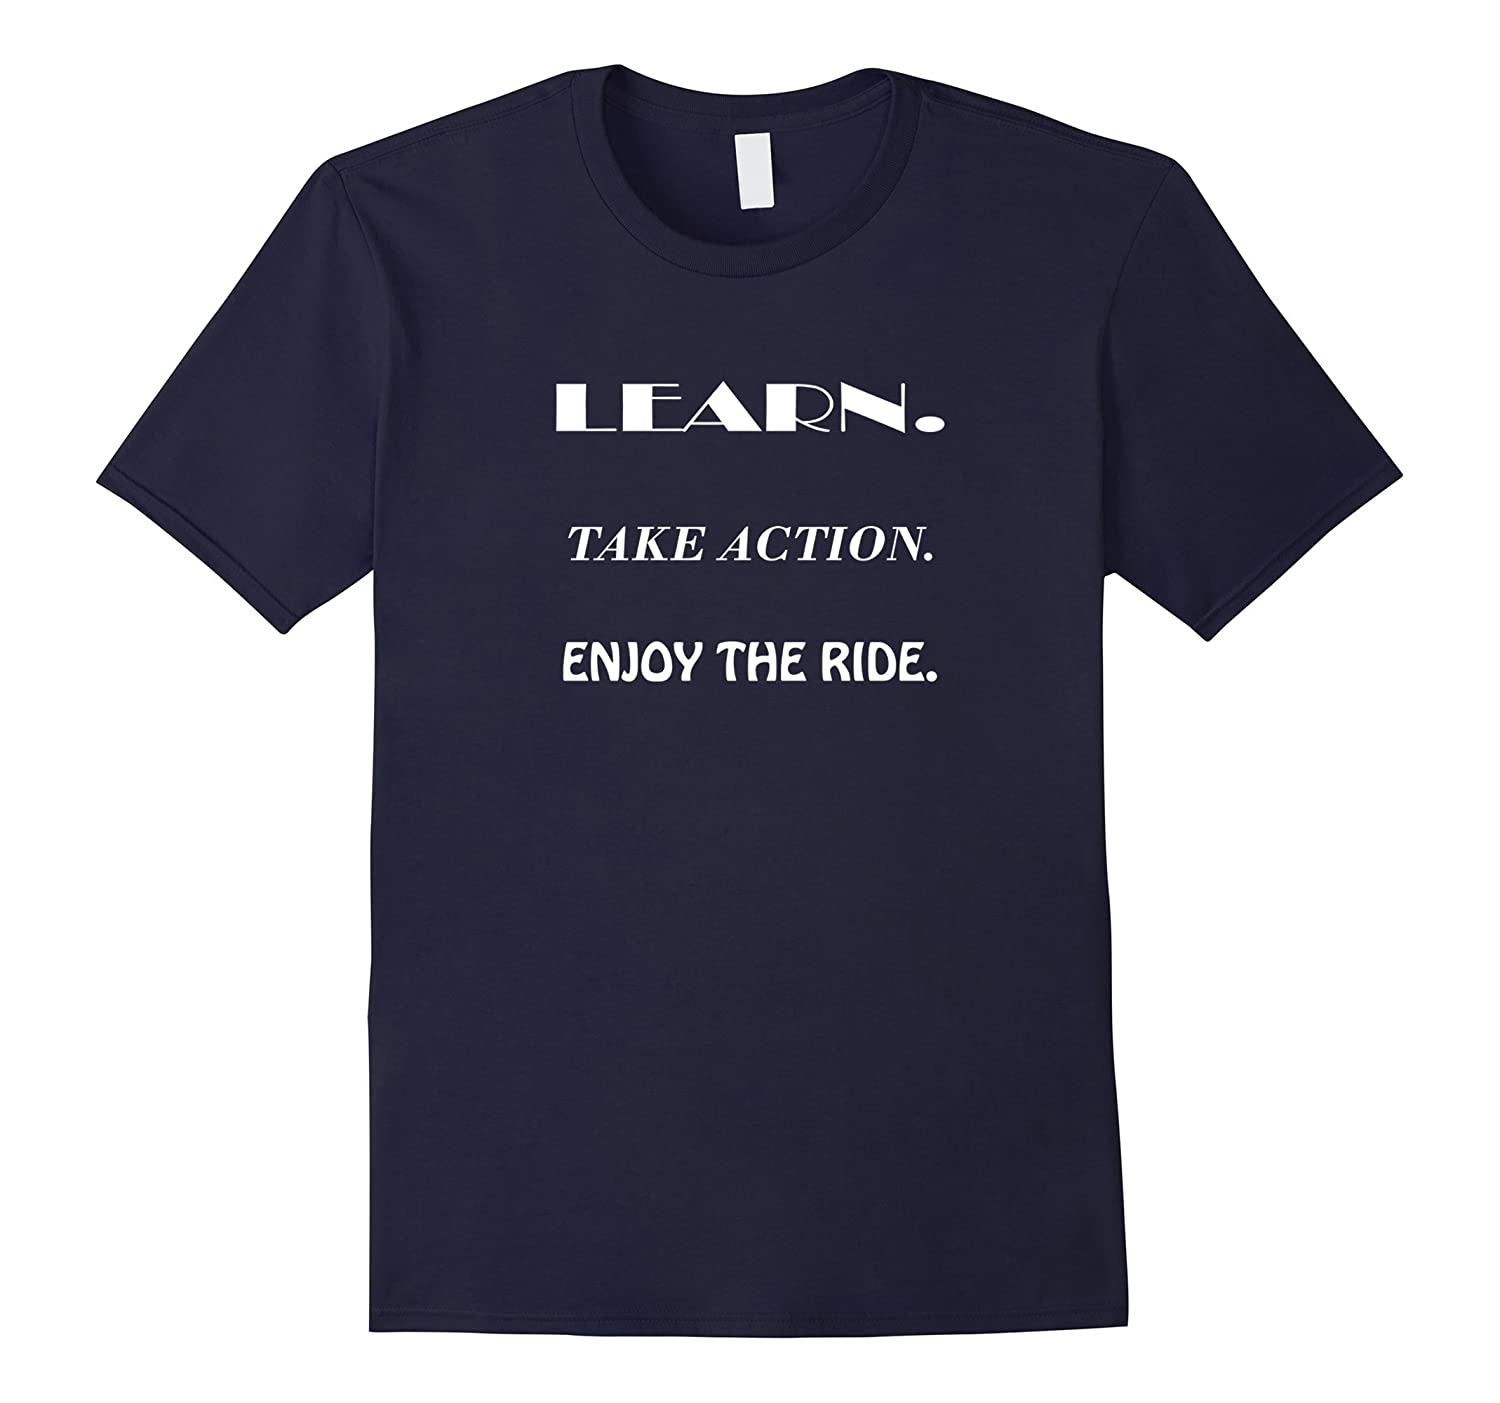 Learn Take Action Enjoy the Ride Motivational T-shirt-Vaci